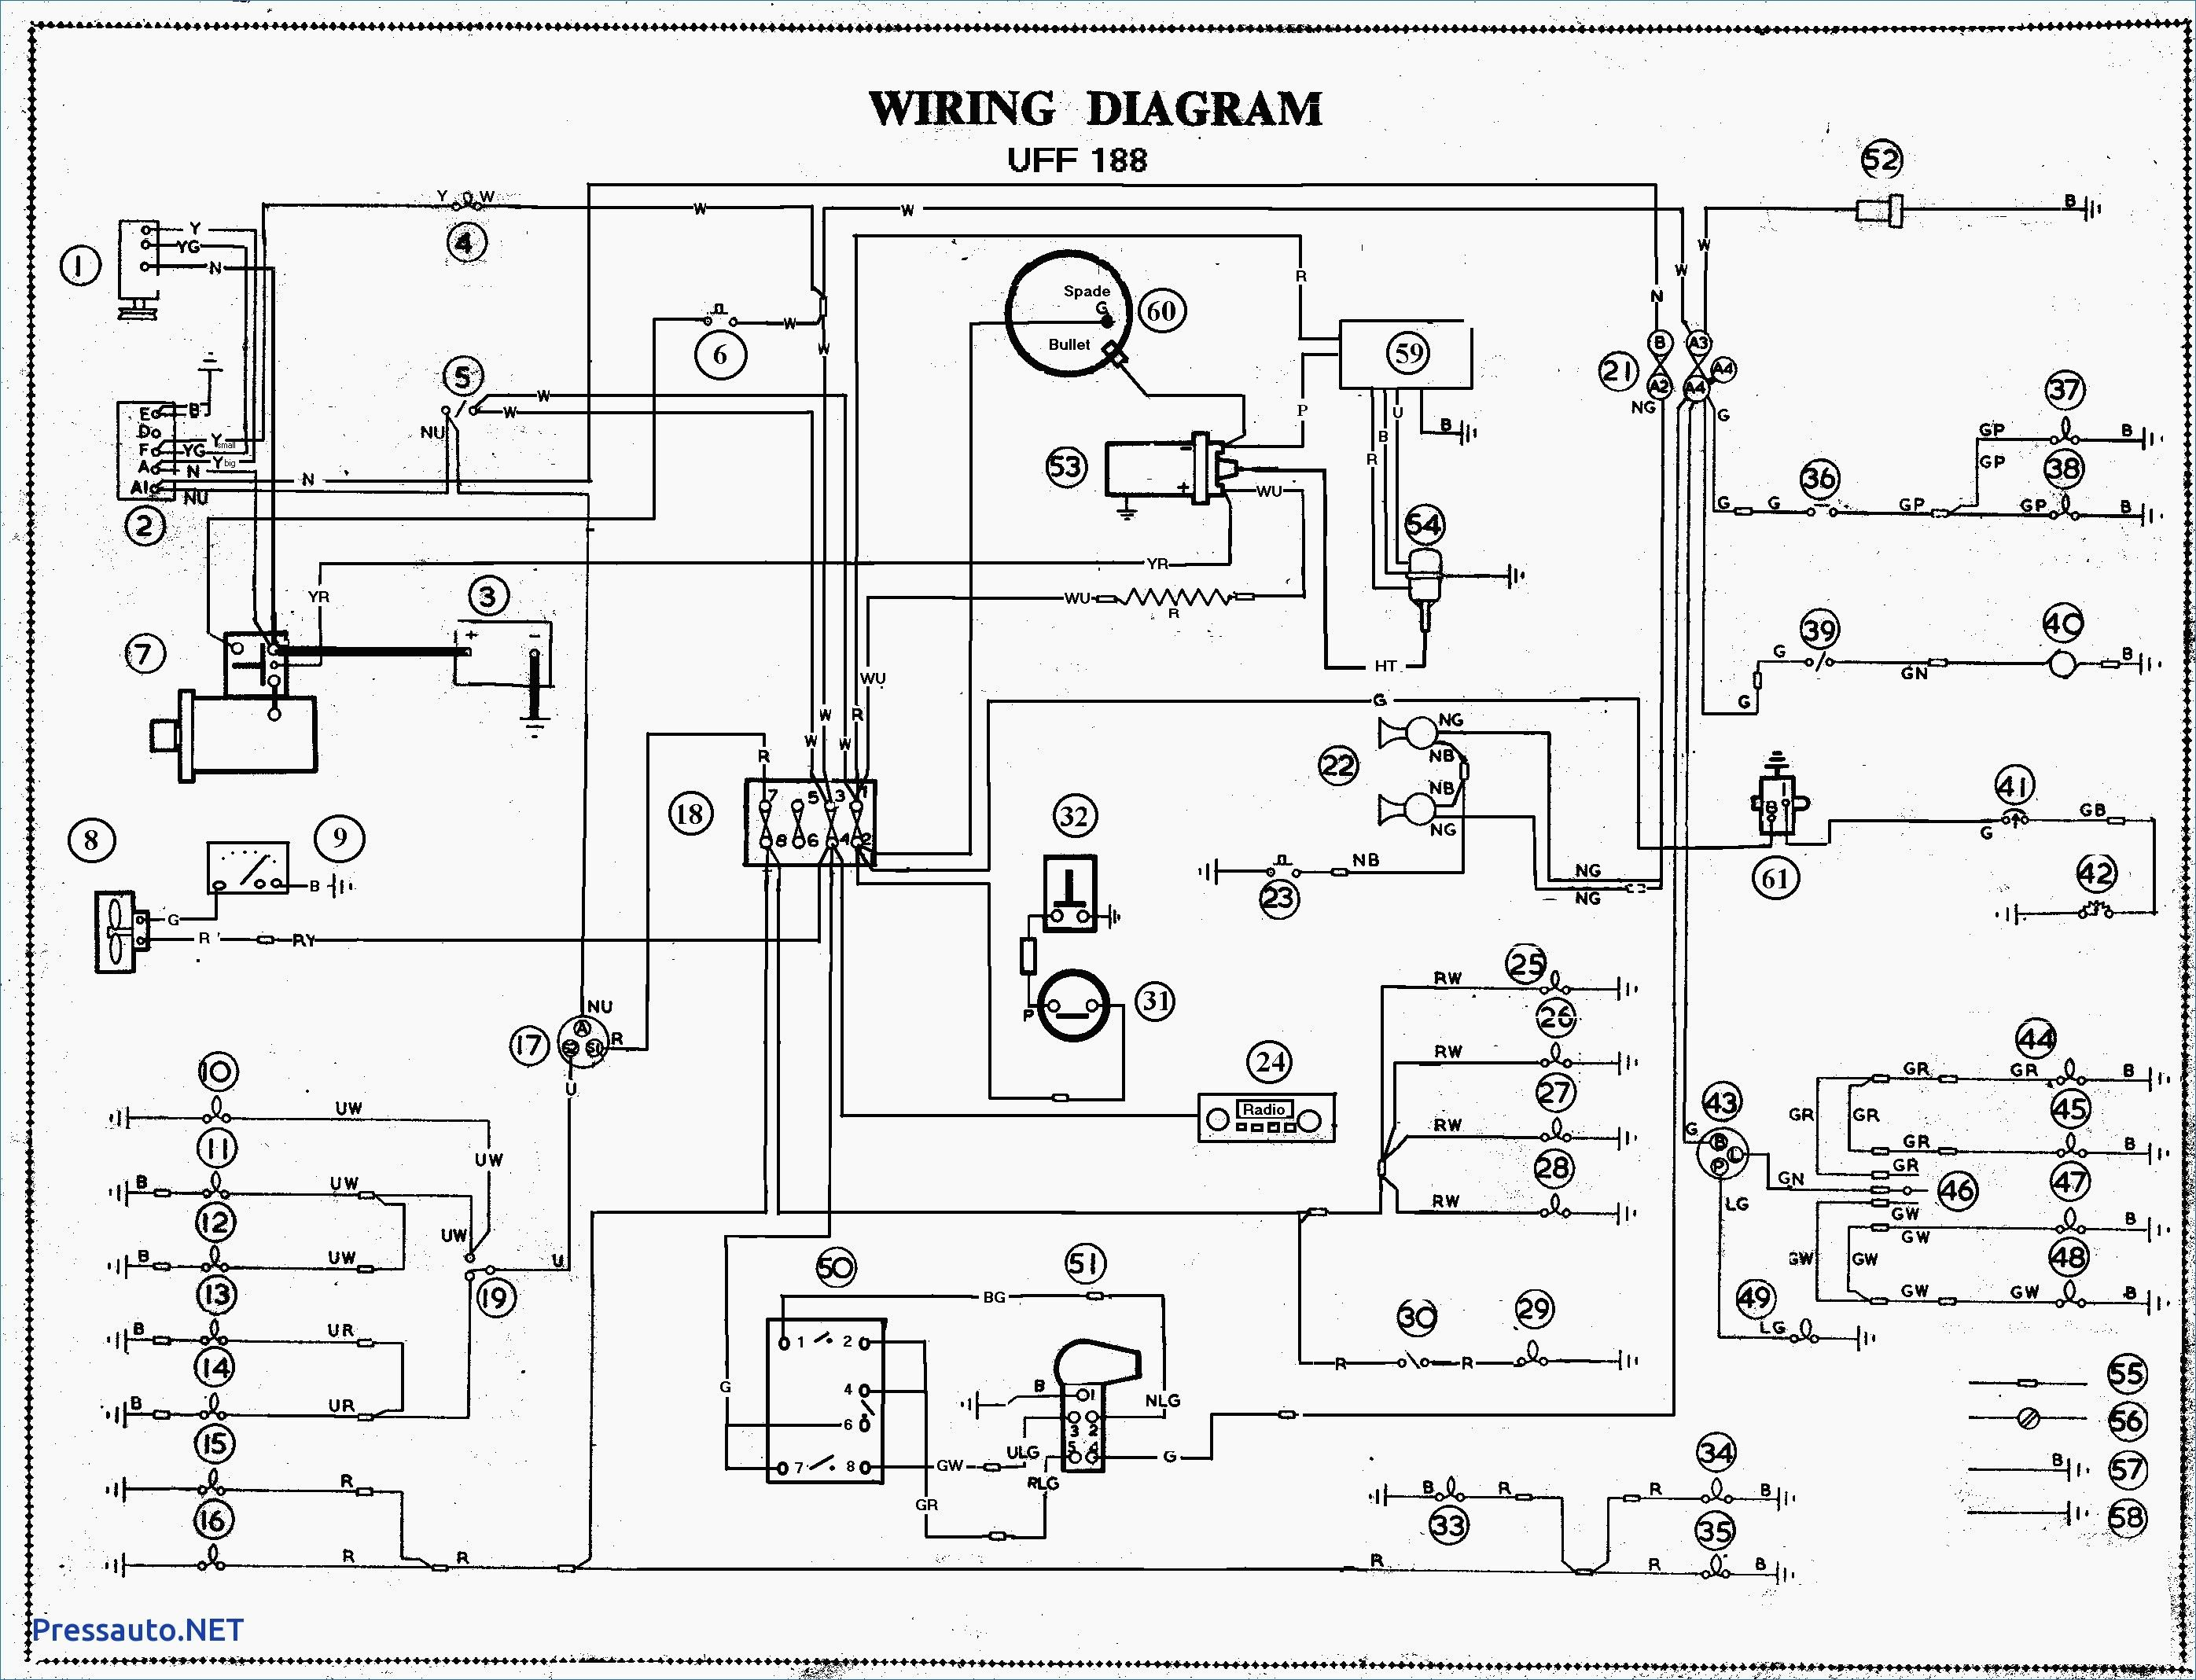 automotive wiring diagram drawing software the 23 best wiring diagram drawing software samples   s  the 23 best wiring diagram drawing